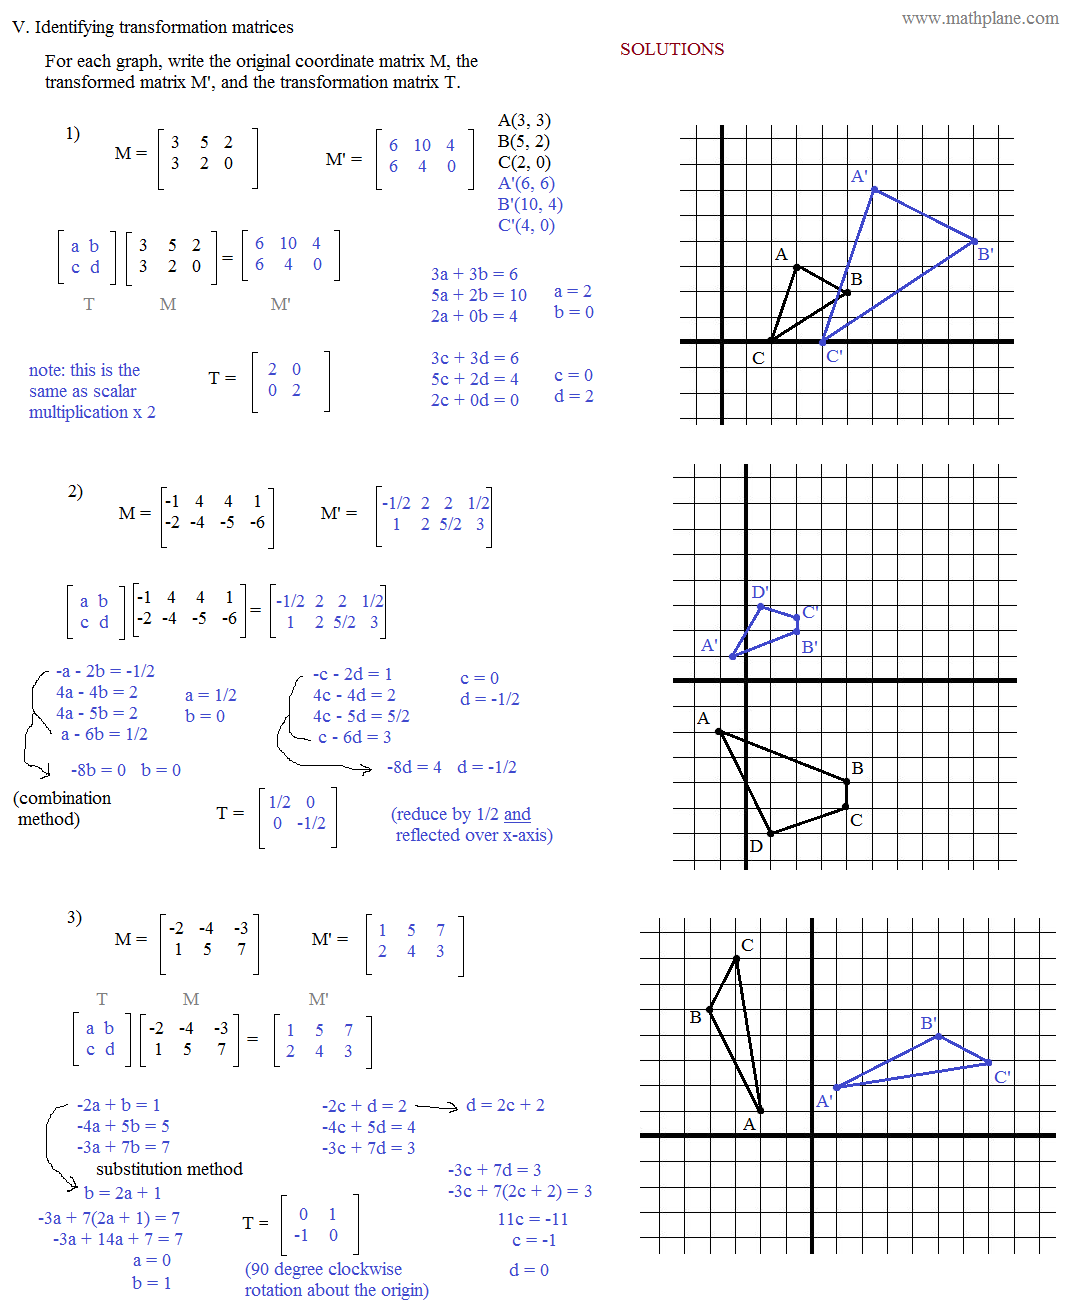 Worksheets Rotation Worksheet transformations on the coordinate plane worksheet switchconf math matrix iii geometry